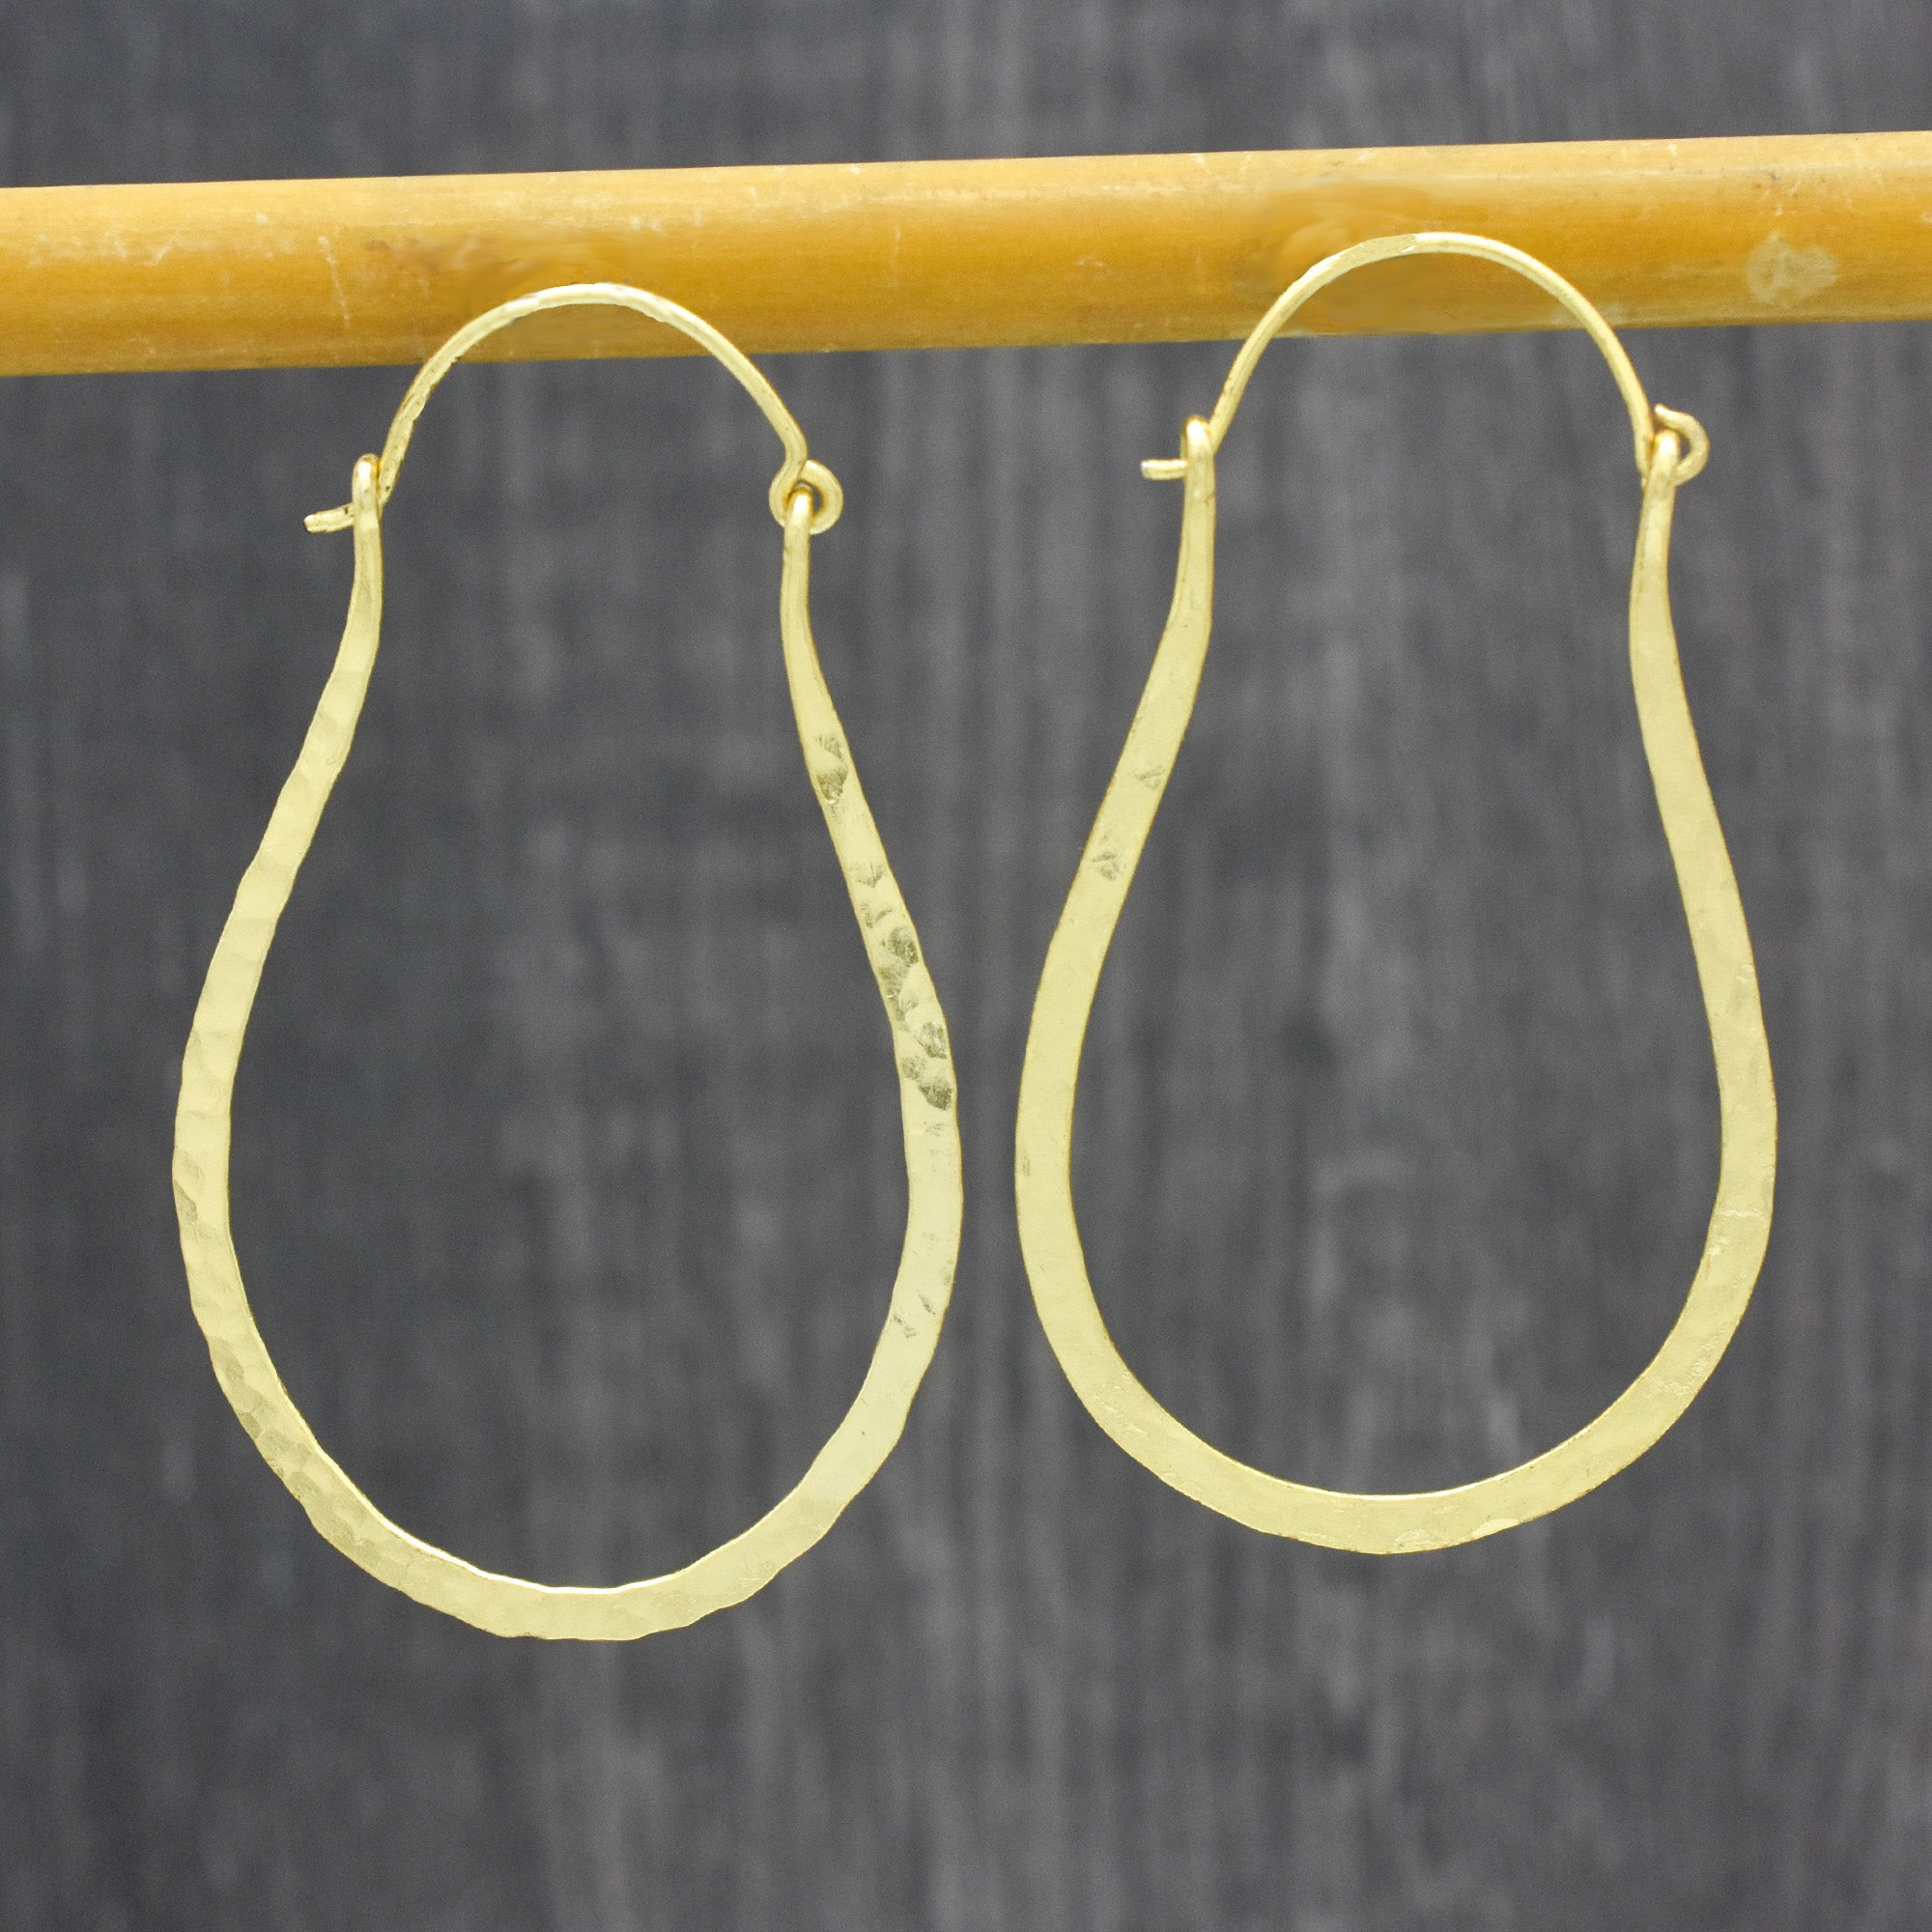 Elongated Hammered Oblong Hoop Earrings Gold Plated